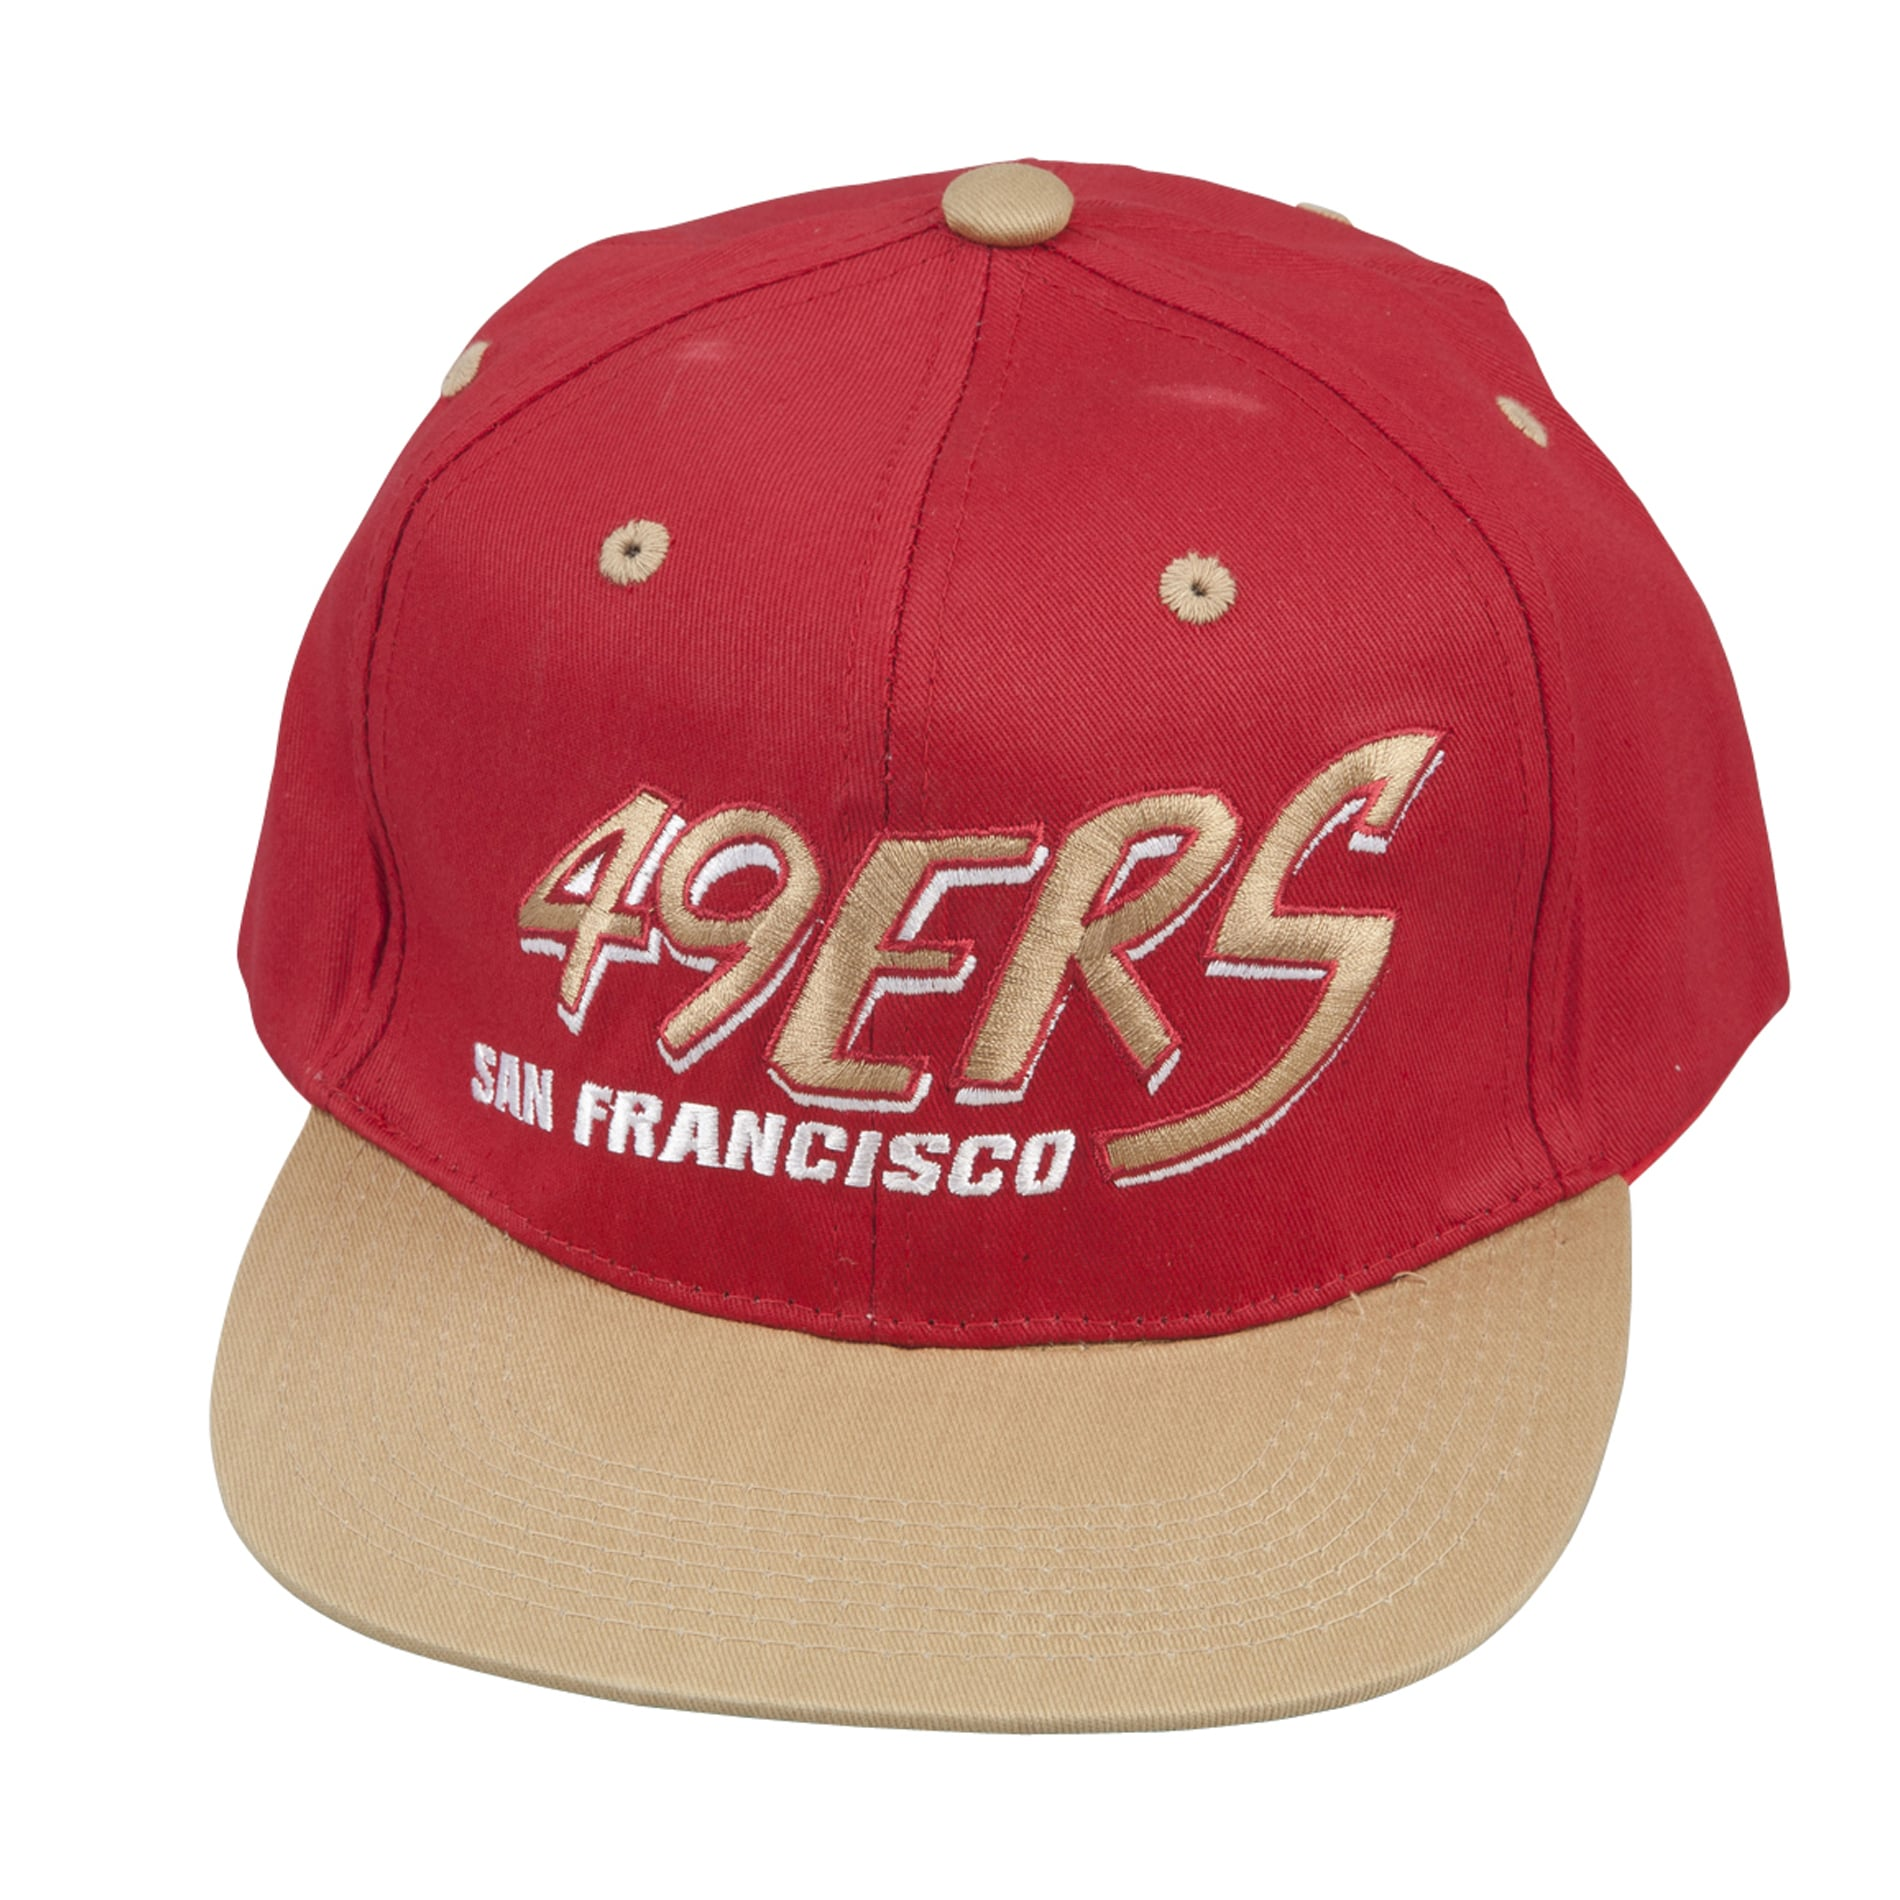 2bd36aa44a78c San Francisco 49ers Retro NFL Snapback Hat ™ Shopping on PopScreen